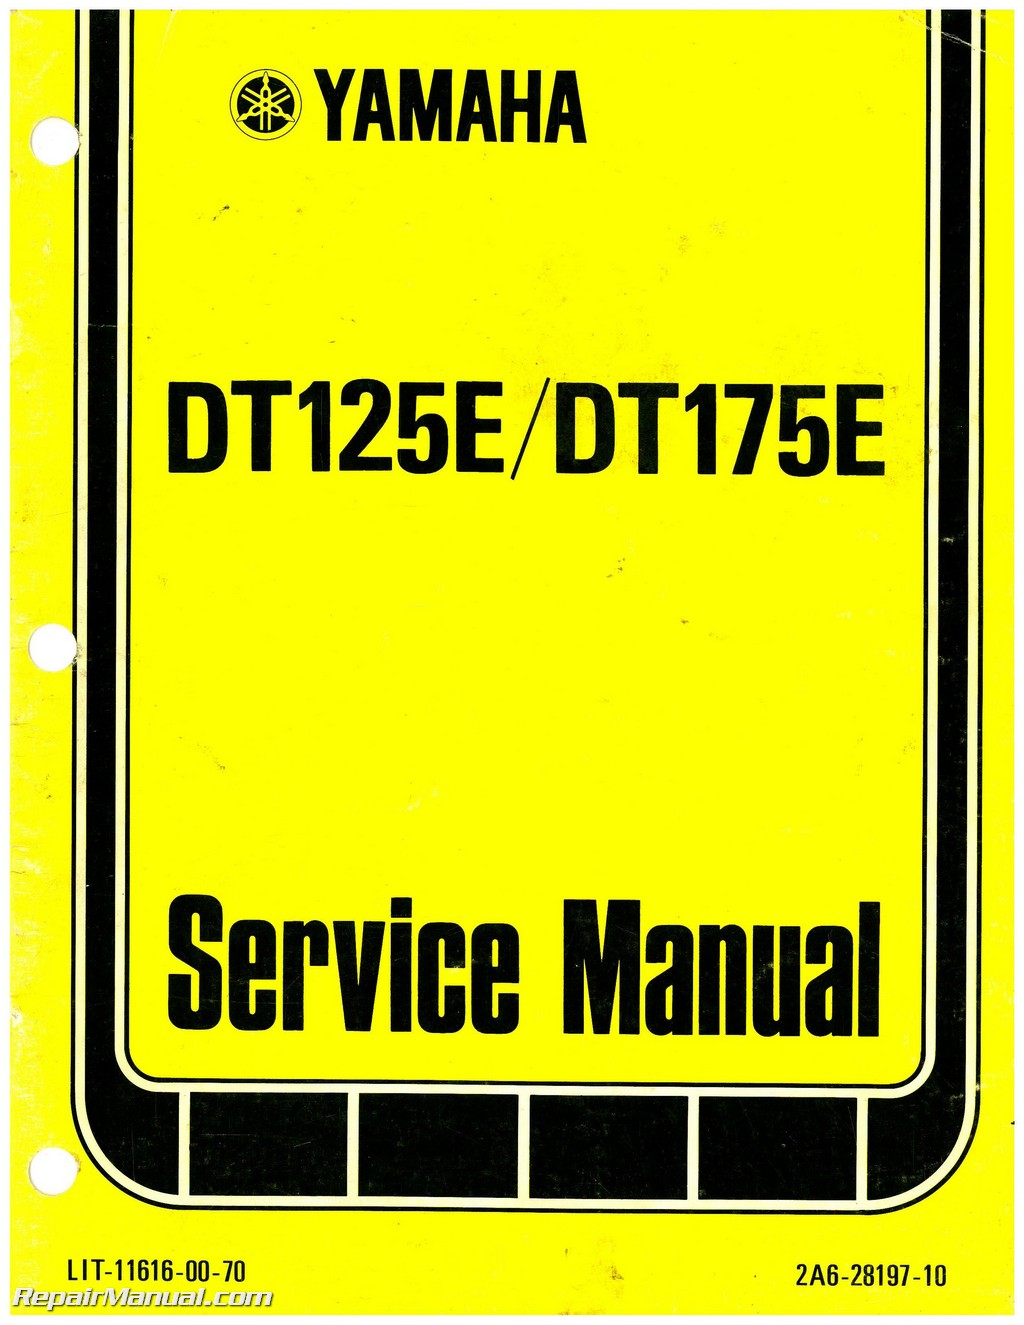 1978 Yamaha Dt125e Dt175e Motorcycle Service Repair Manual